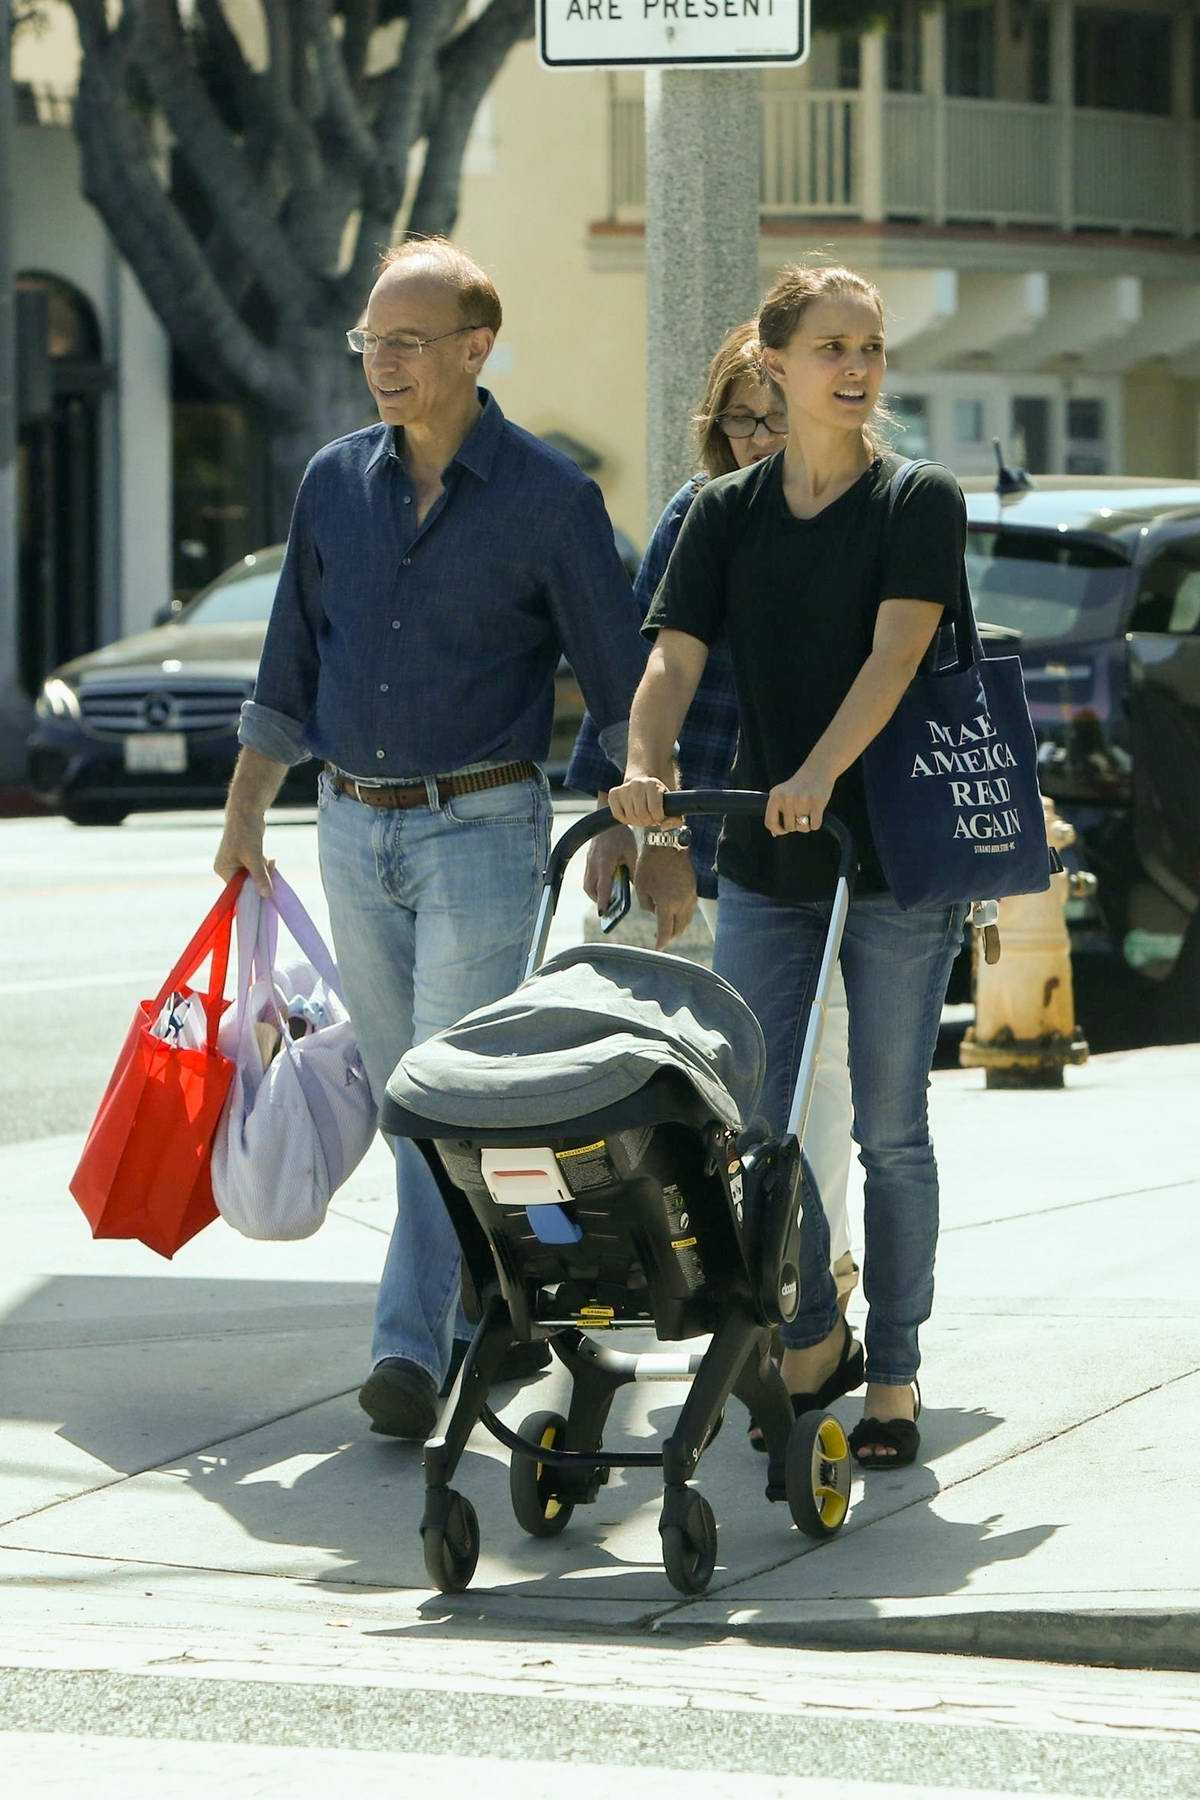 Natalie Portman enjoys a day with her parents in Santa Monica, California